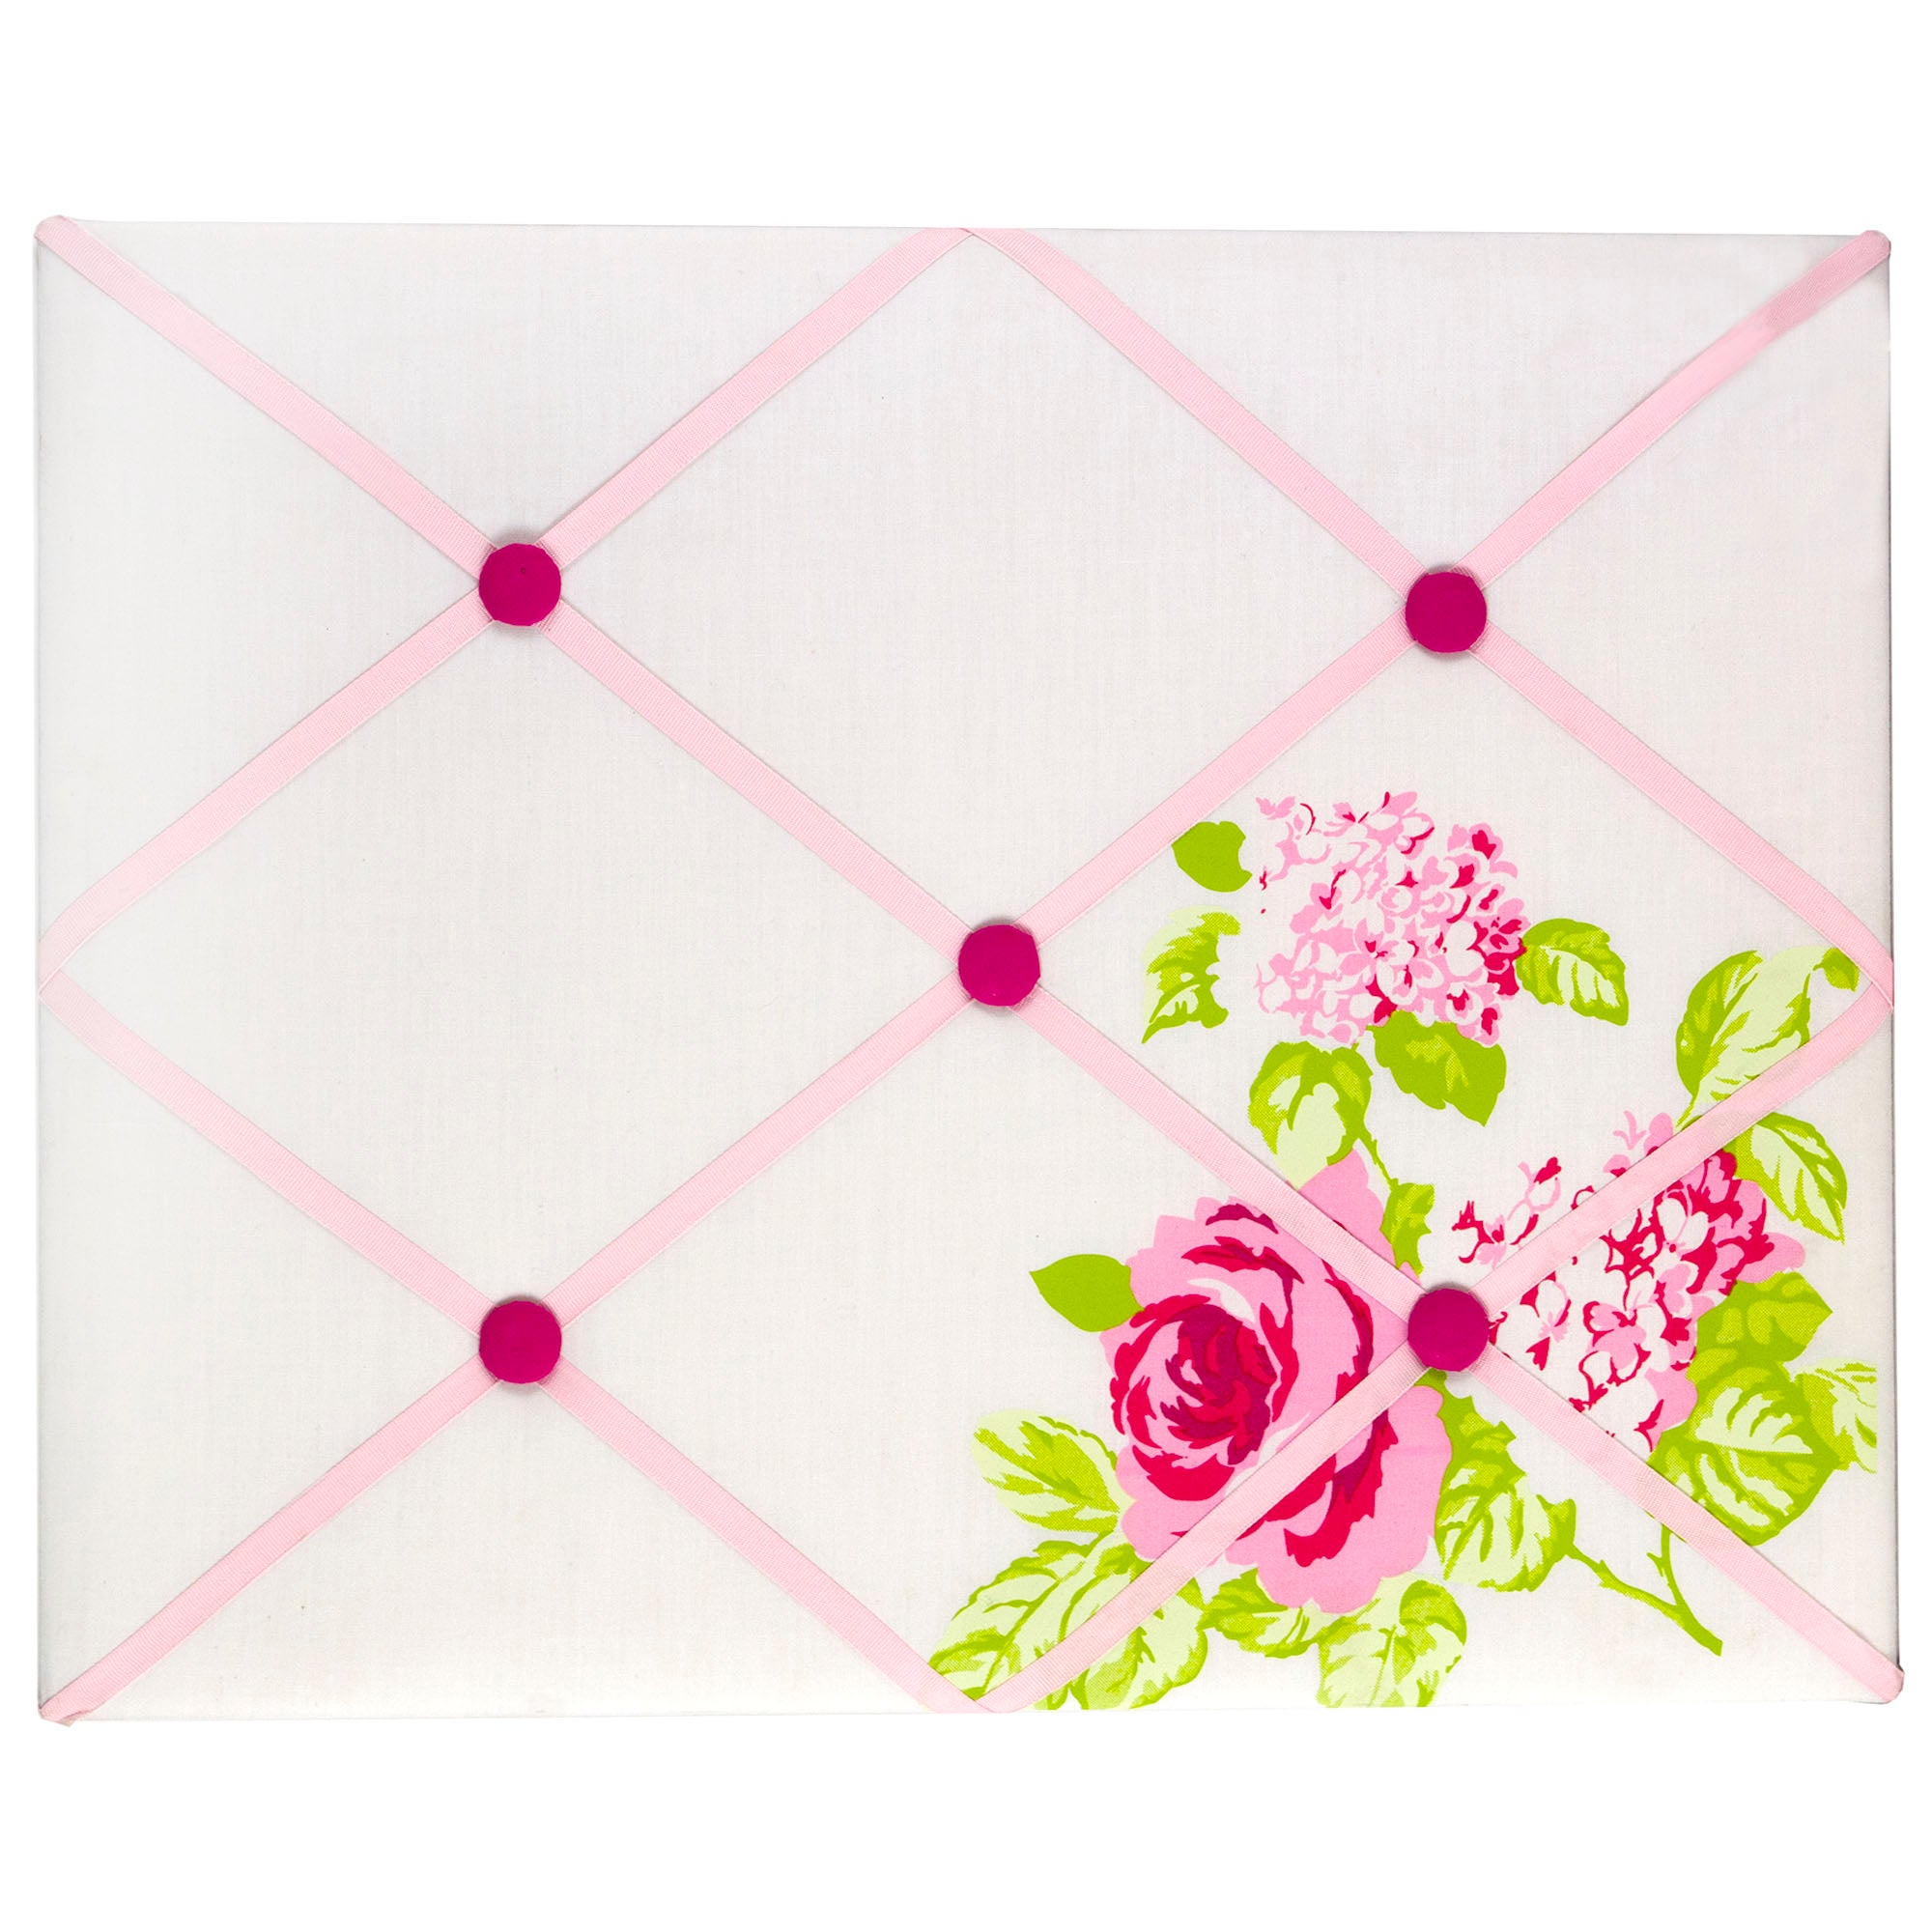 Rose and Ellis Clarendon Collection Memo Board